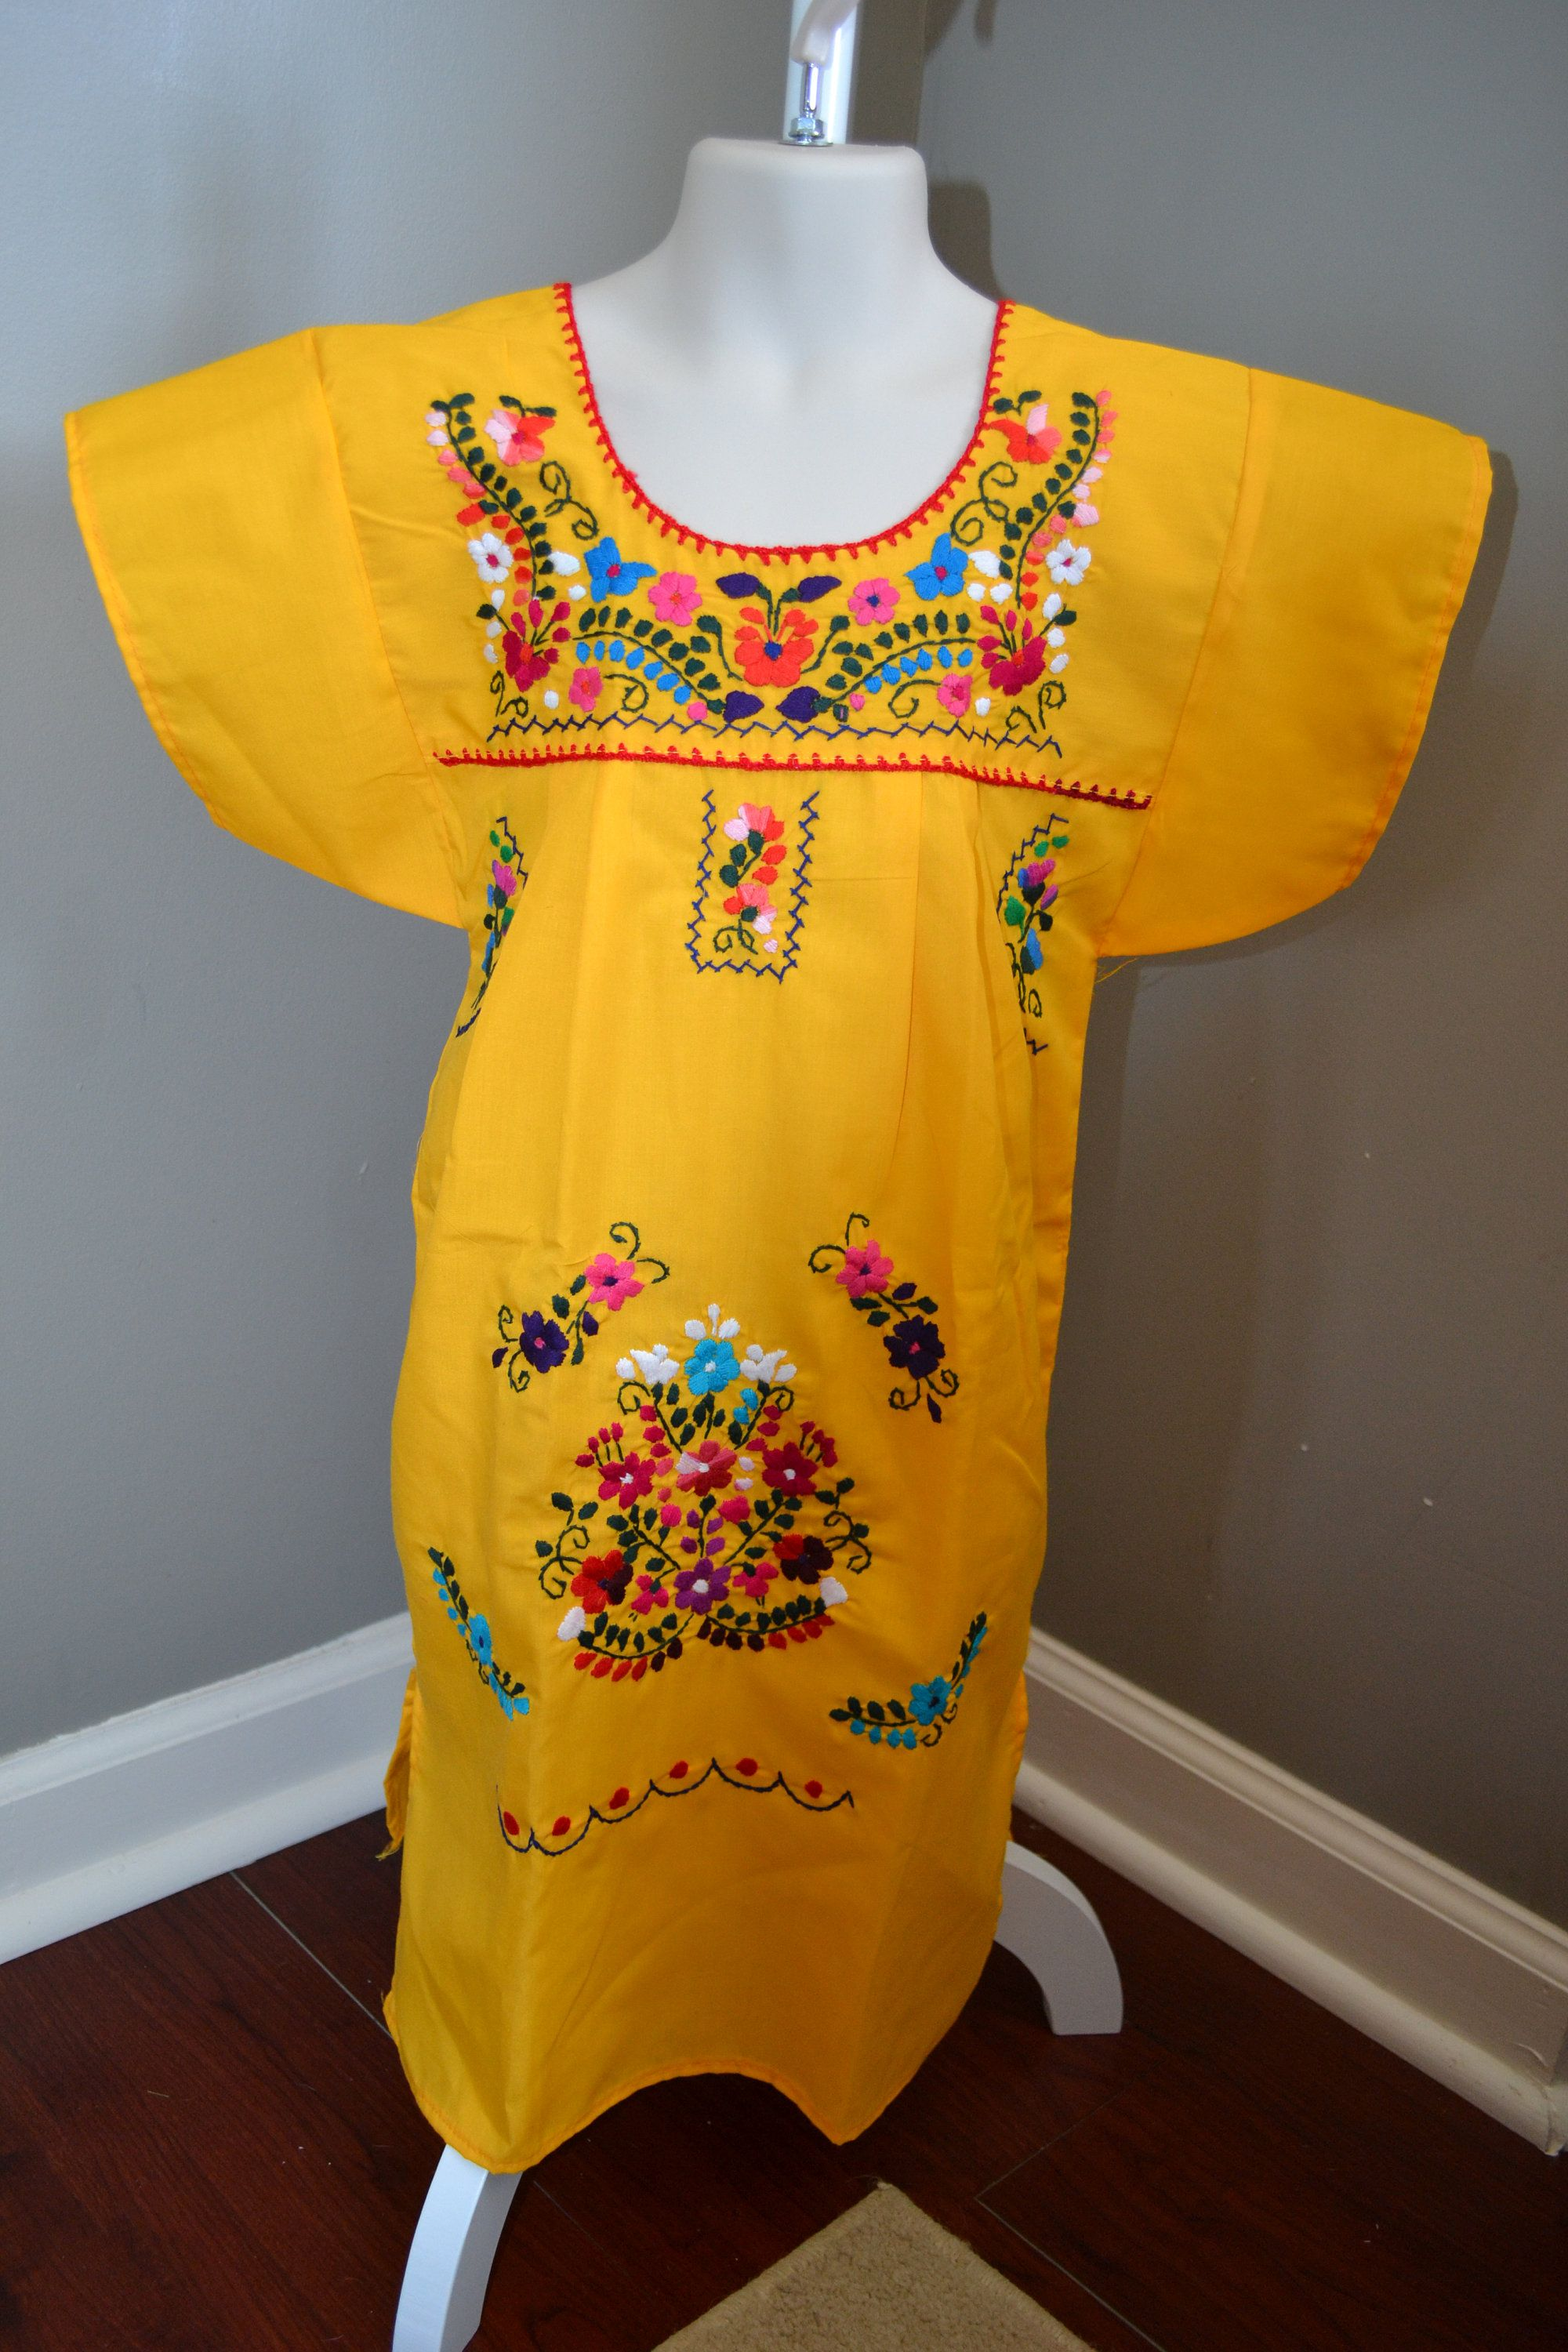 Manta Dress Toddlers Mexican Dress Embroidered Dress Etsy Toddler Mexican Dress Mexican Dresses Mexican Embroidered Dress [ 3000 x 2000 Pixel ]